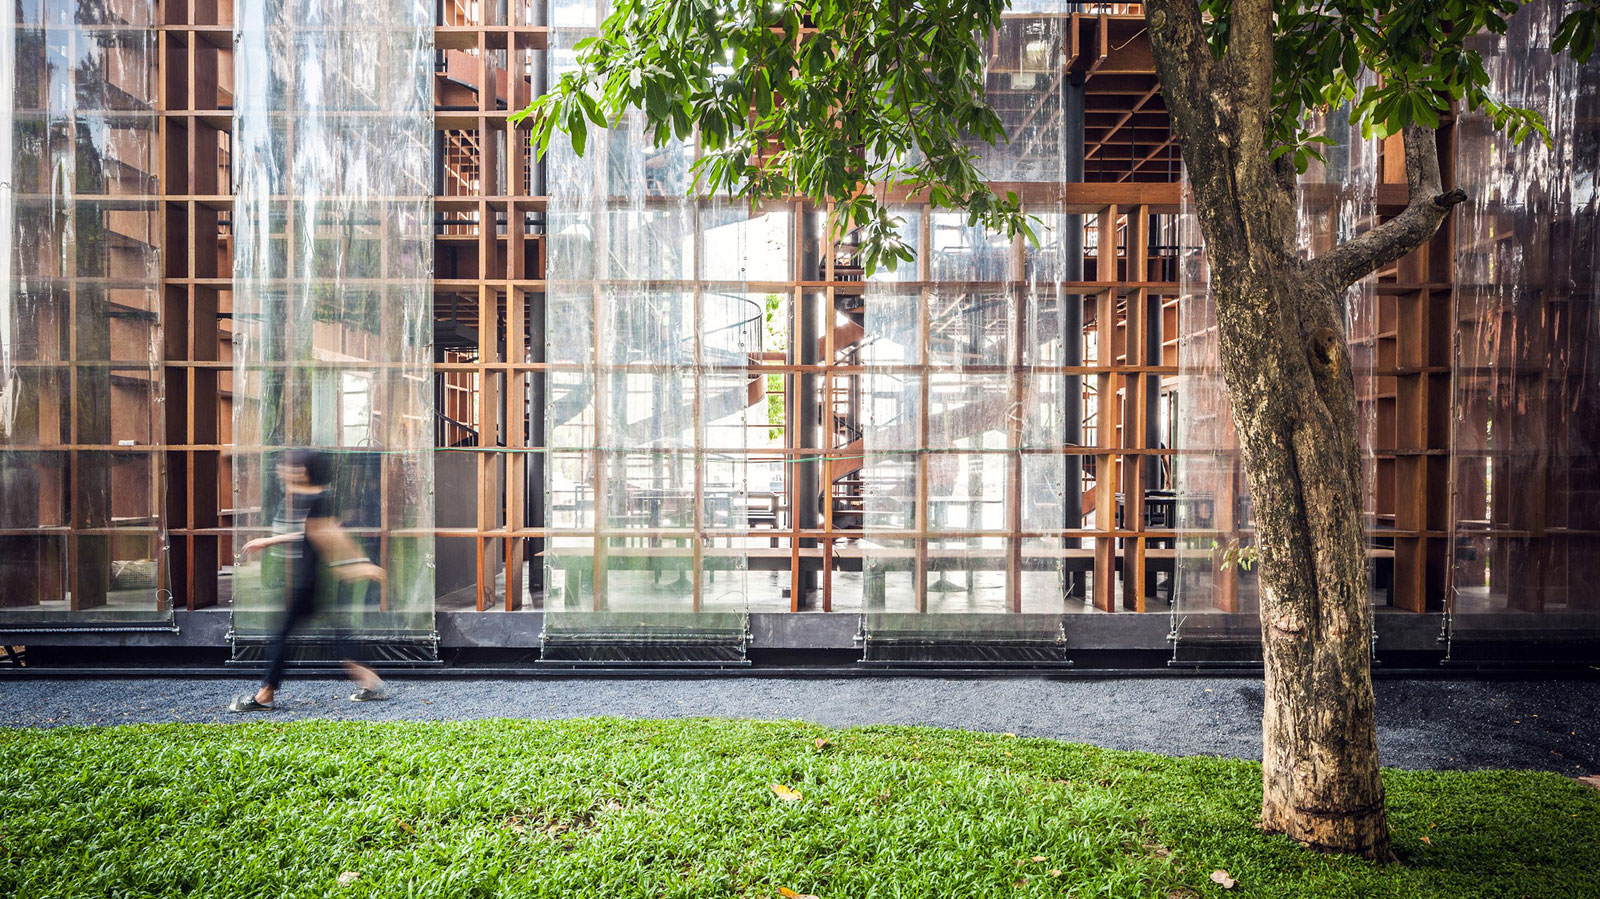 wine-bangkok-project-studio-architecture-public-leisure-thailand-_dezeen_hero-a